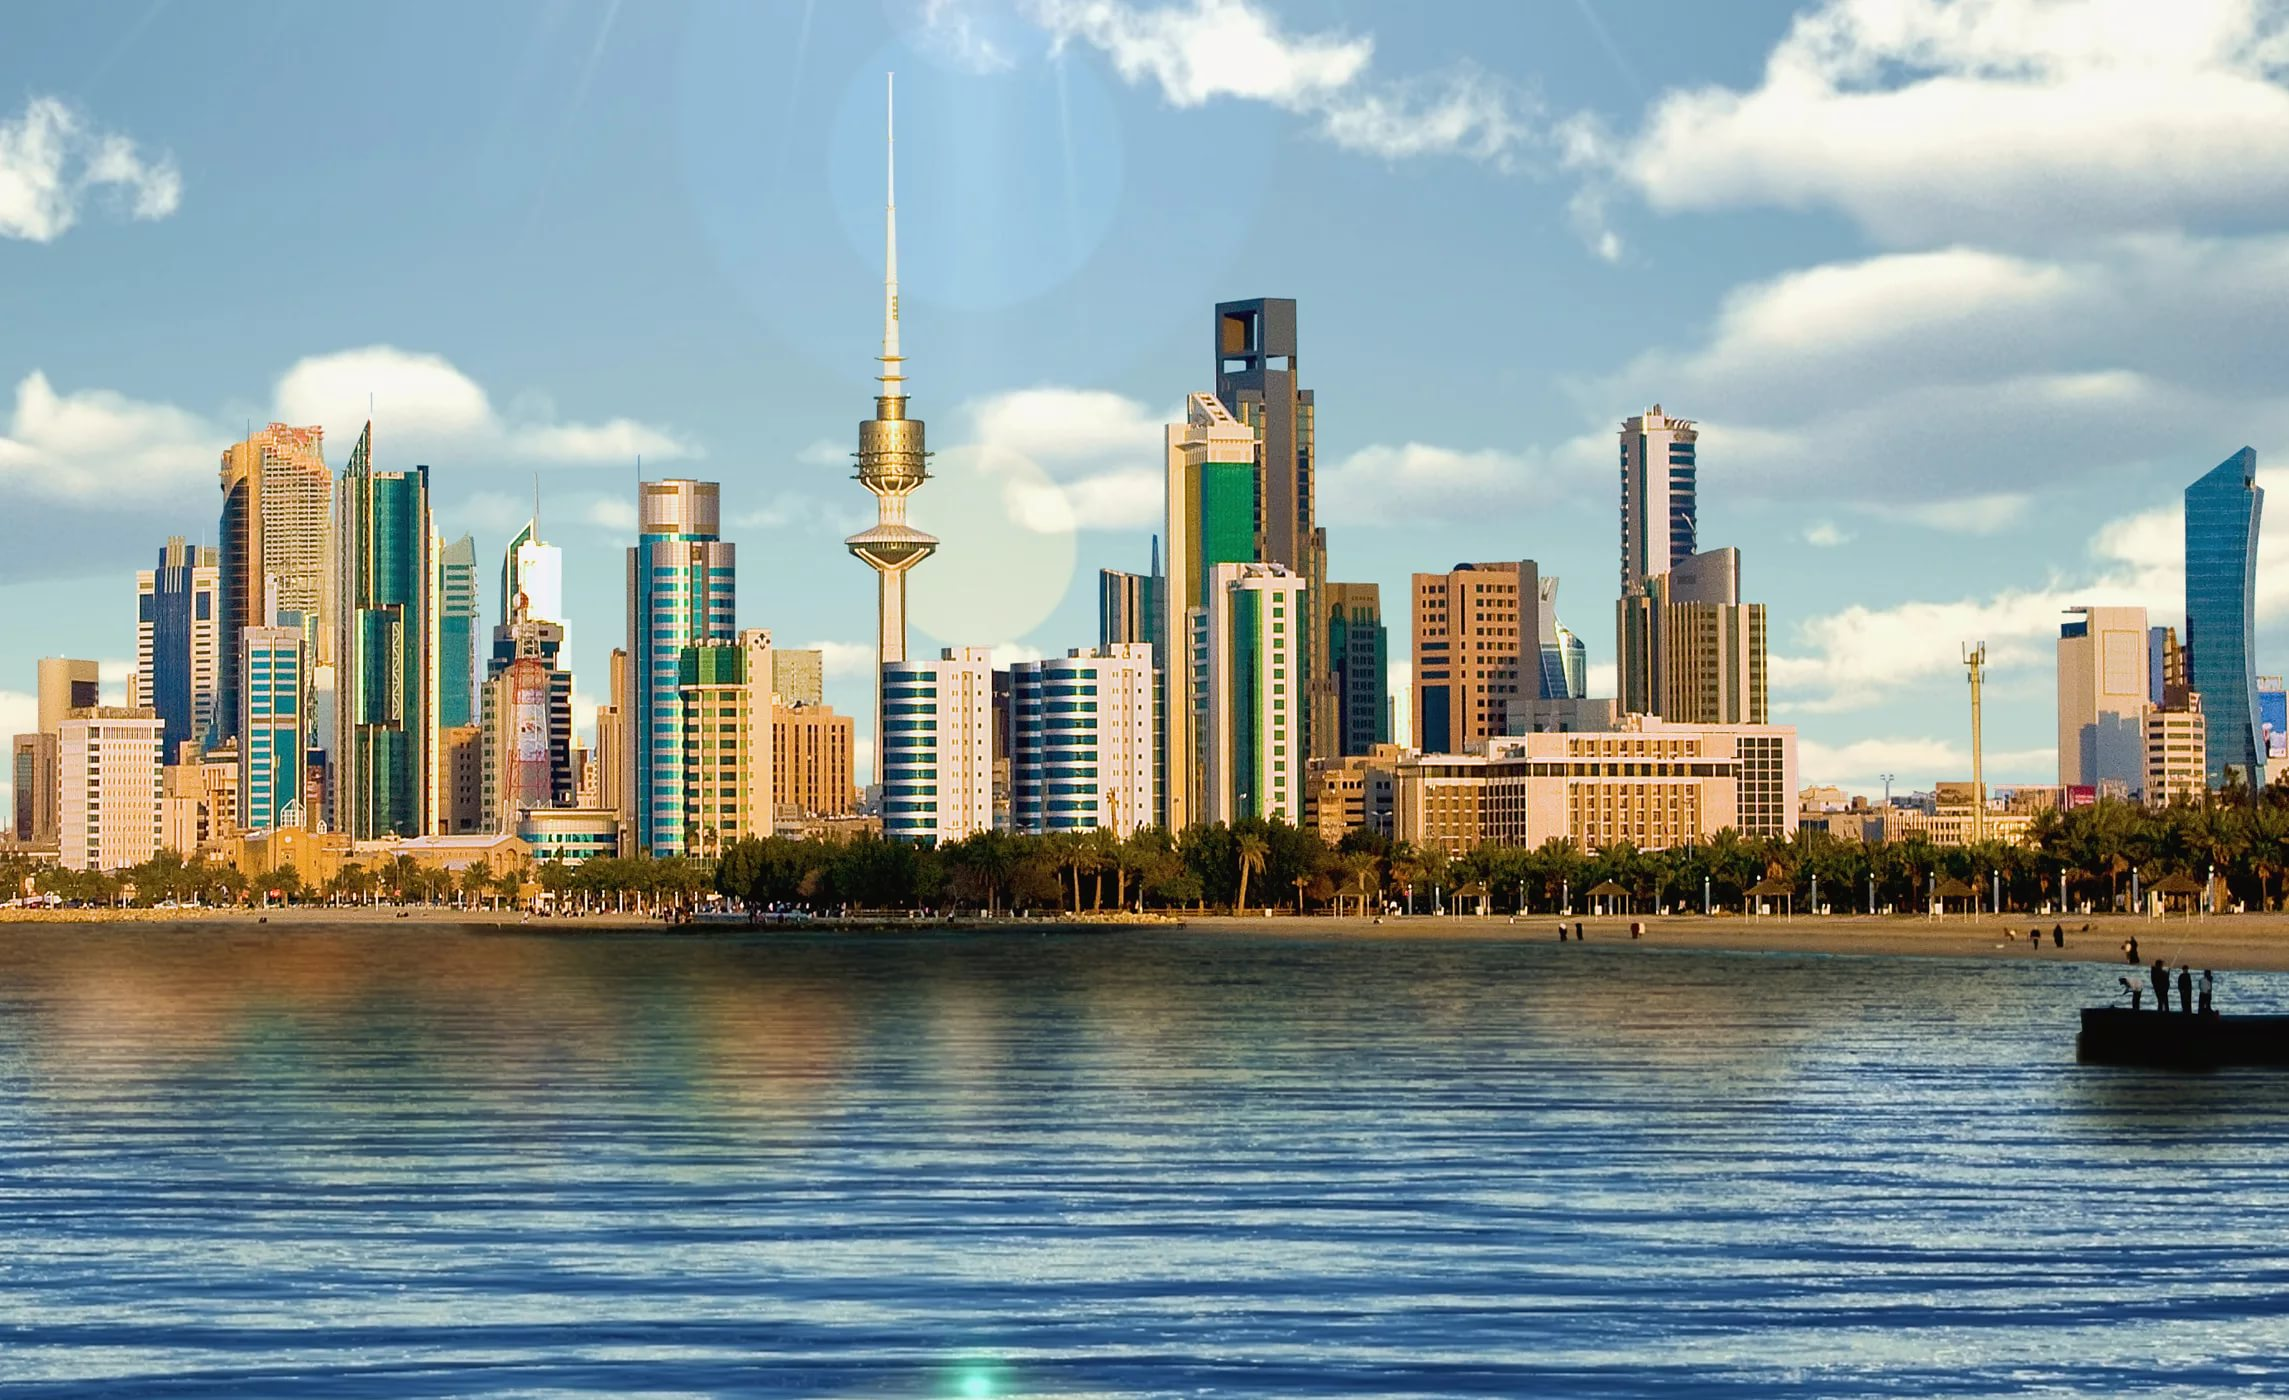 Kuwait City Wallpapers 37 images   DodoWallpaper 2289x1400